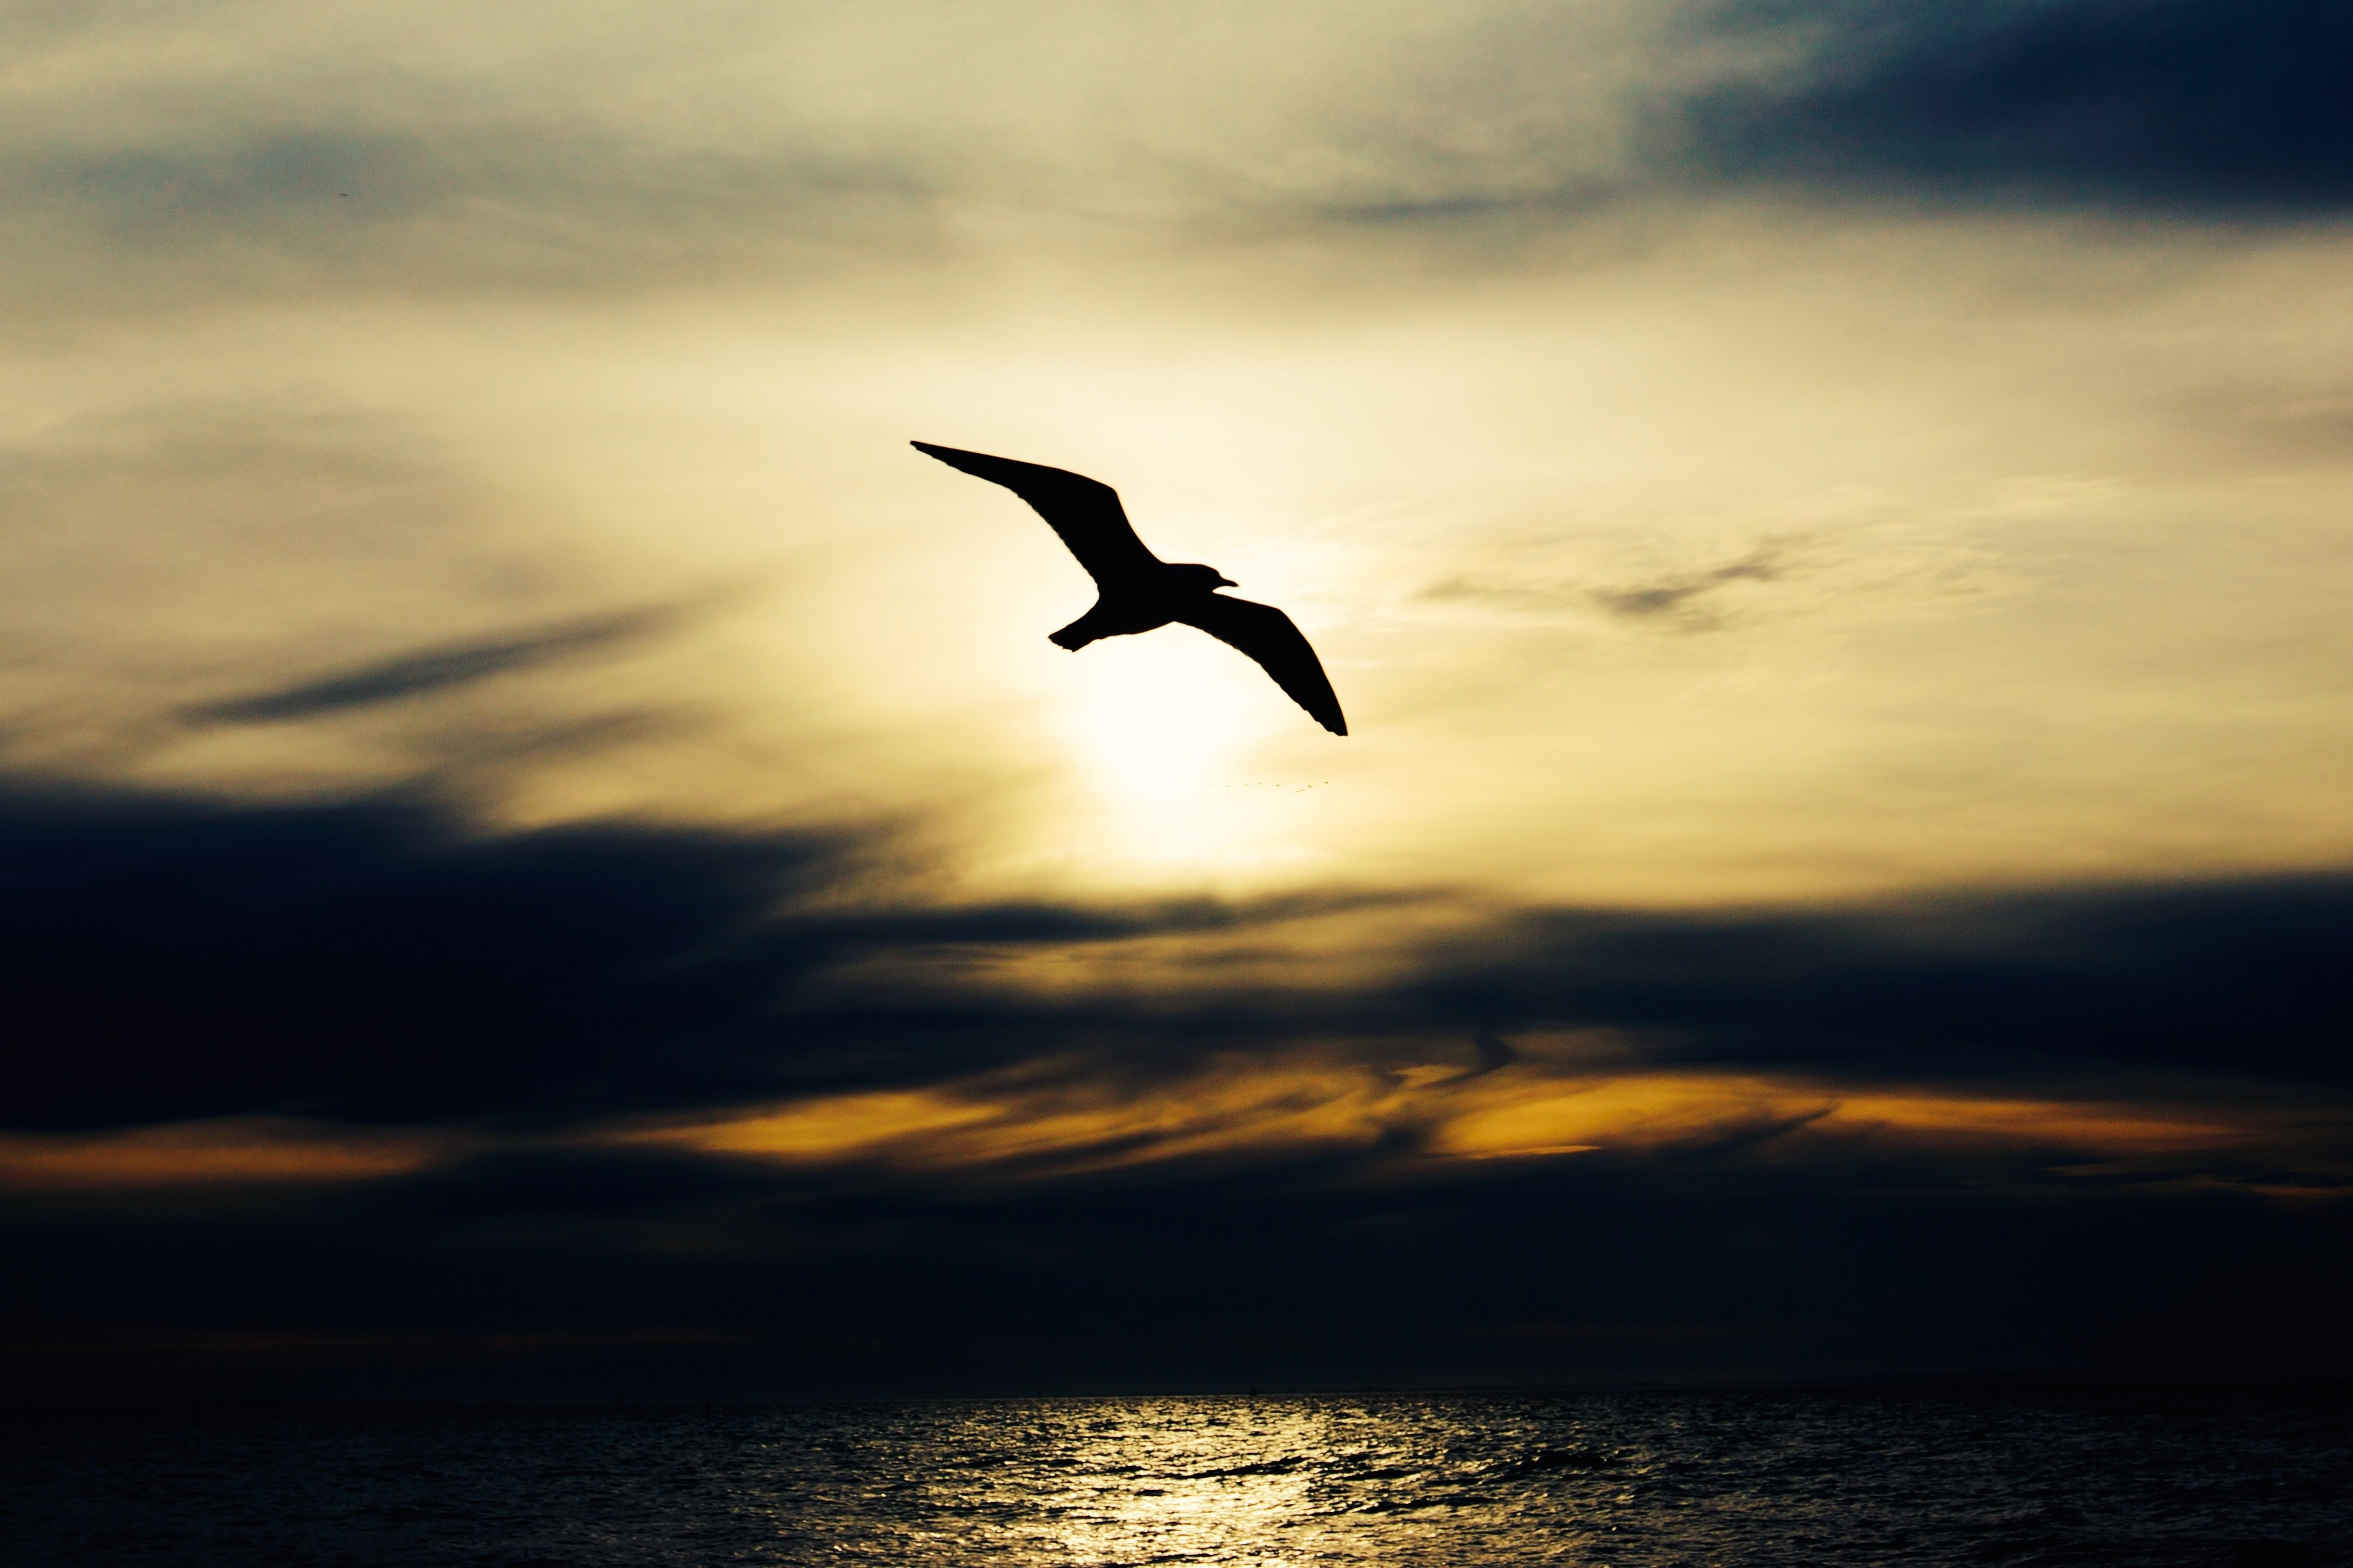 The silhouette of a seagull at dawn against the sky during sunrise